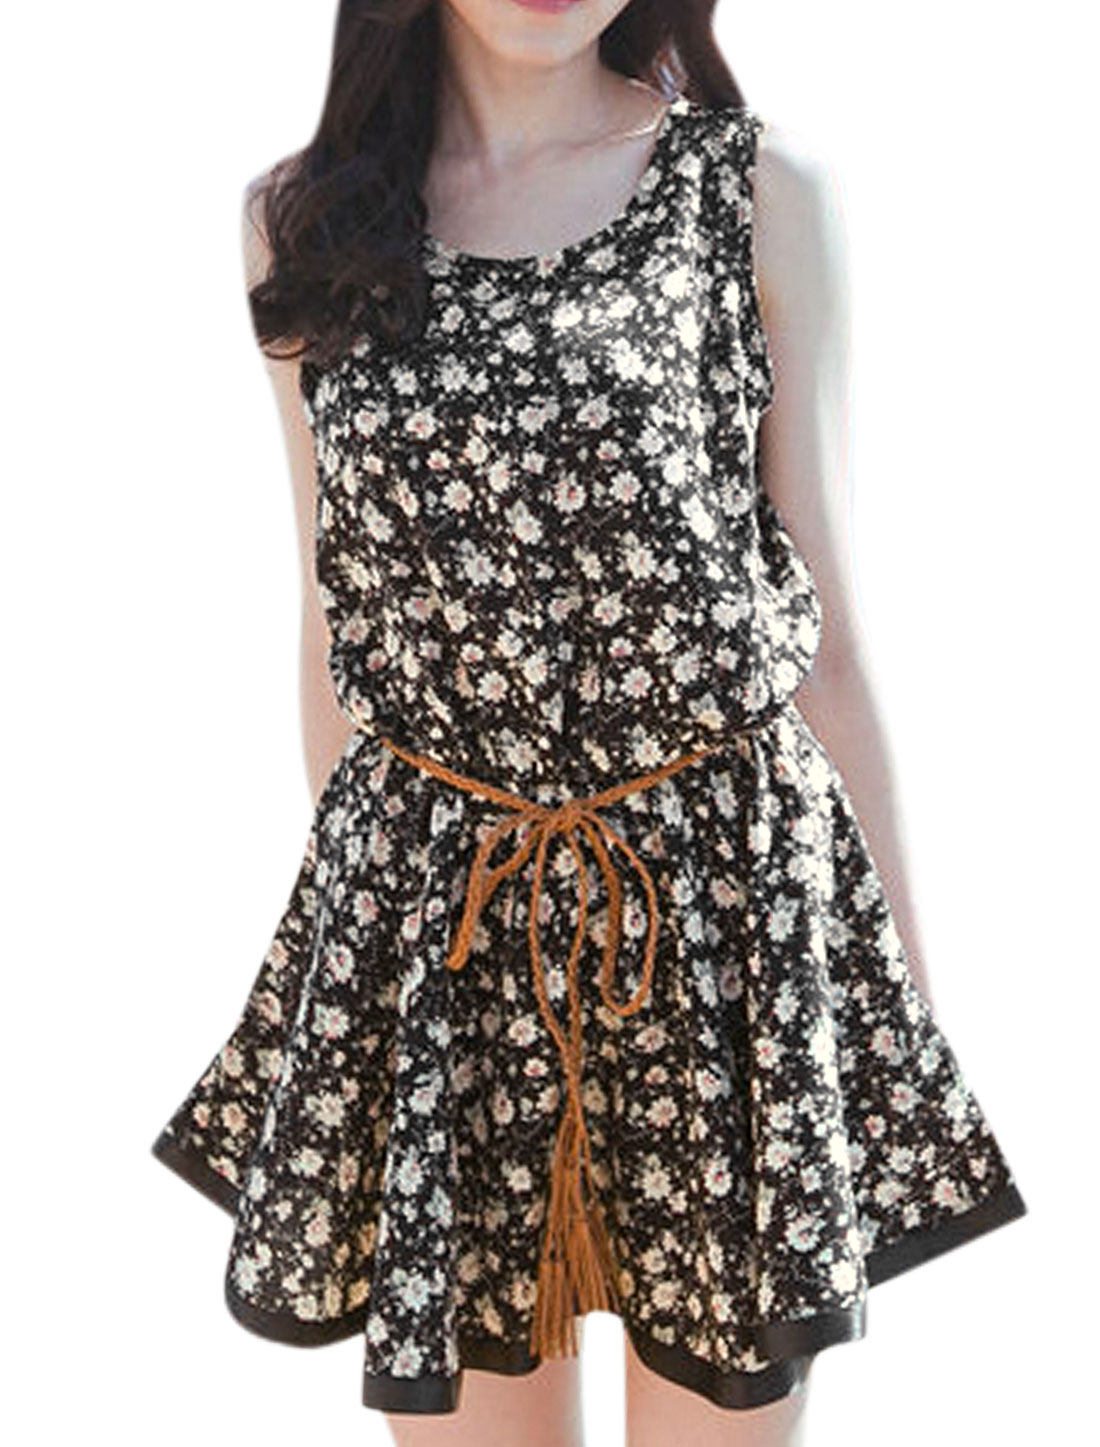 Round Neck Floral Prints Leisure Dress for Women Black Beige S